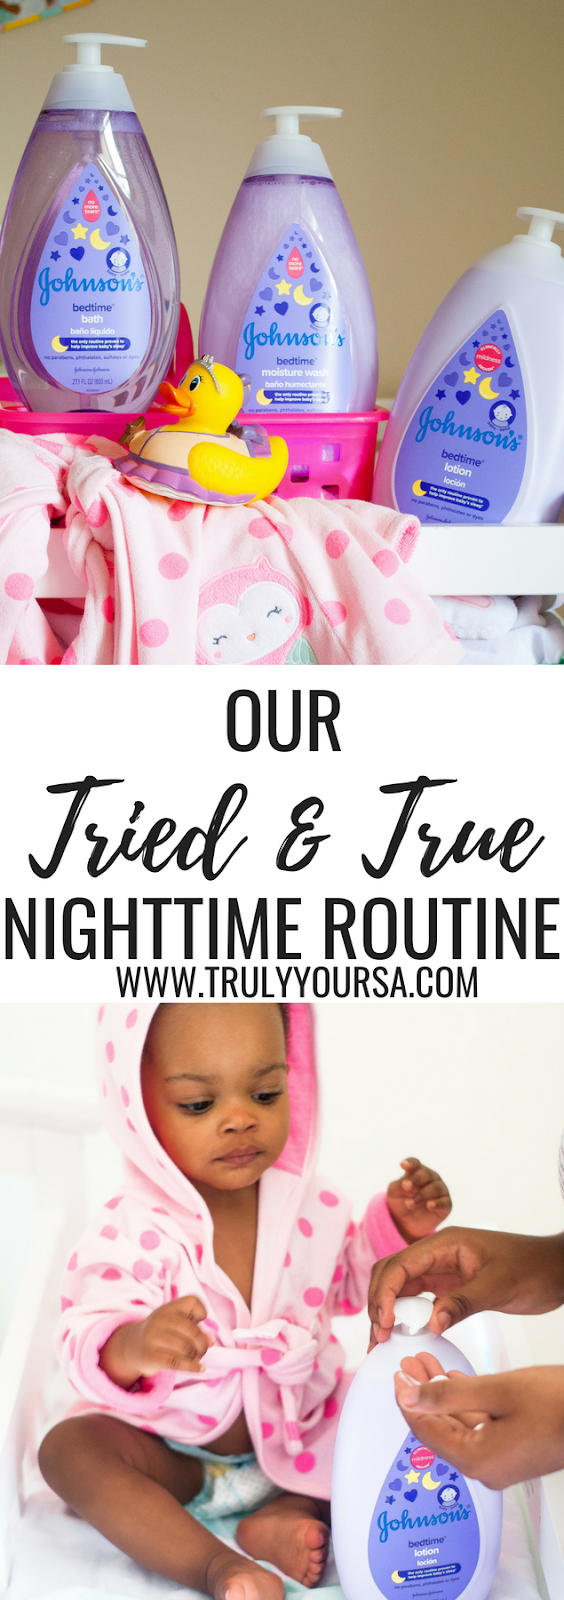 AD As a first-time mom it took me months to even think of developing a nighttime routine for McKenna. I thought I could just lay her in her bassinet at bedtime and she would magically fall asleep. If I could only redo one thing from her first year I would definitely incorporate a bedtime routine from the start. Since we've started using this tried and true nighttime routine McKenna falls asleep faster and stays asleep longer! Of course, a tried and true nighttime routine isn't complete without using tried and true gentle products from JOHNSON'S®! AD #GetJohnsonsBaby #ChooseGentle #babybedtimeroutine #nighttimeroutine #babynighttimeroutine @Target @JohnsonsBaby